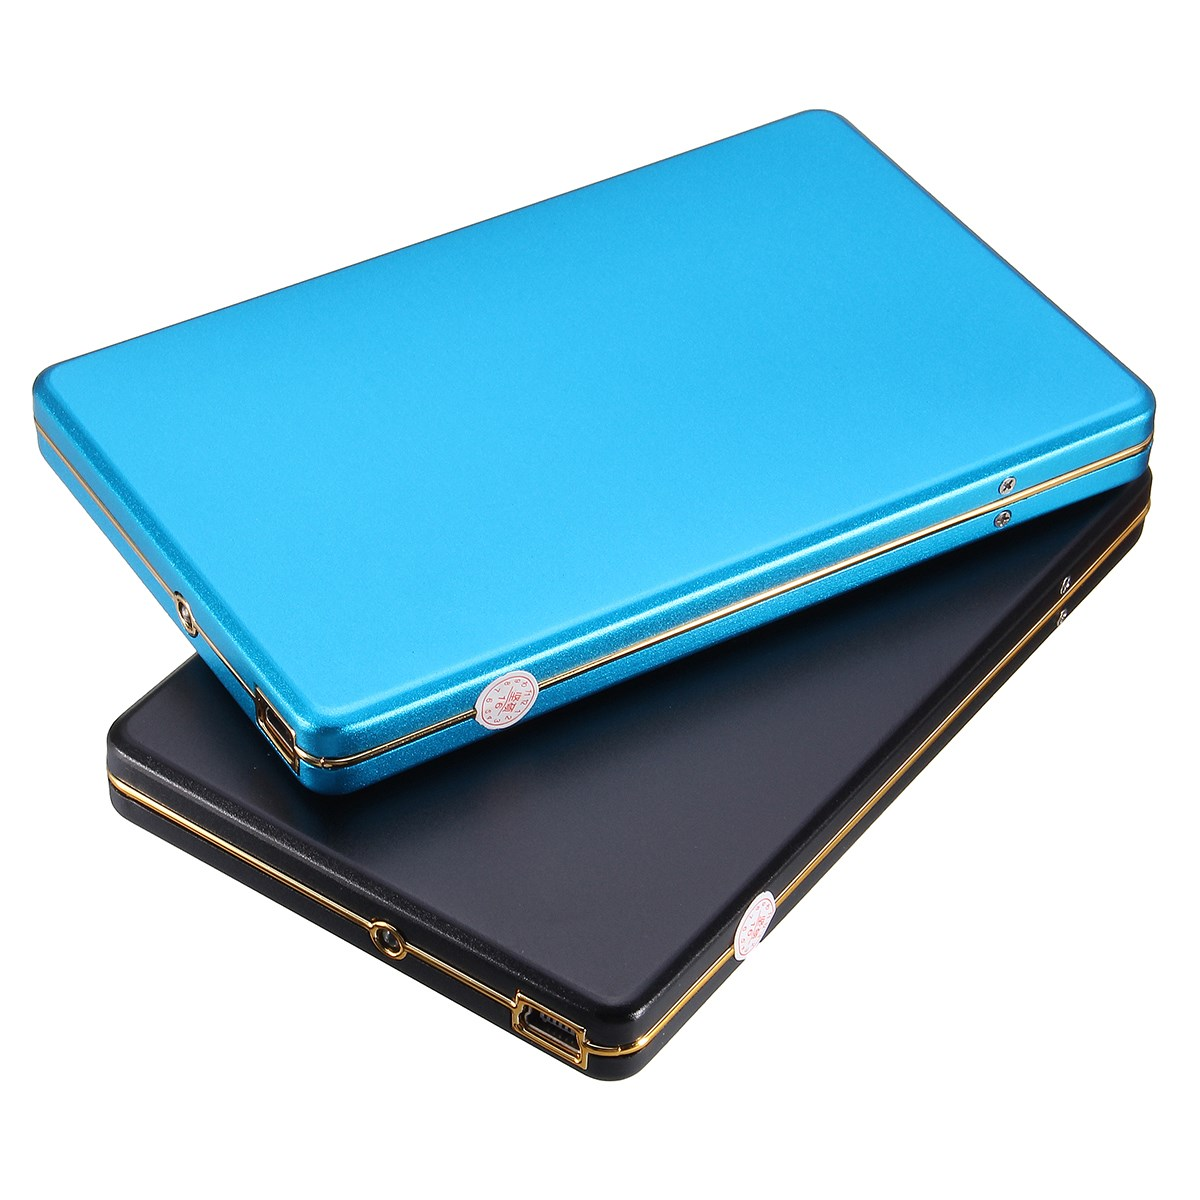 "External Hard Drive 500gb High Speed 2.5"" Hard Disk for ..."